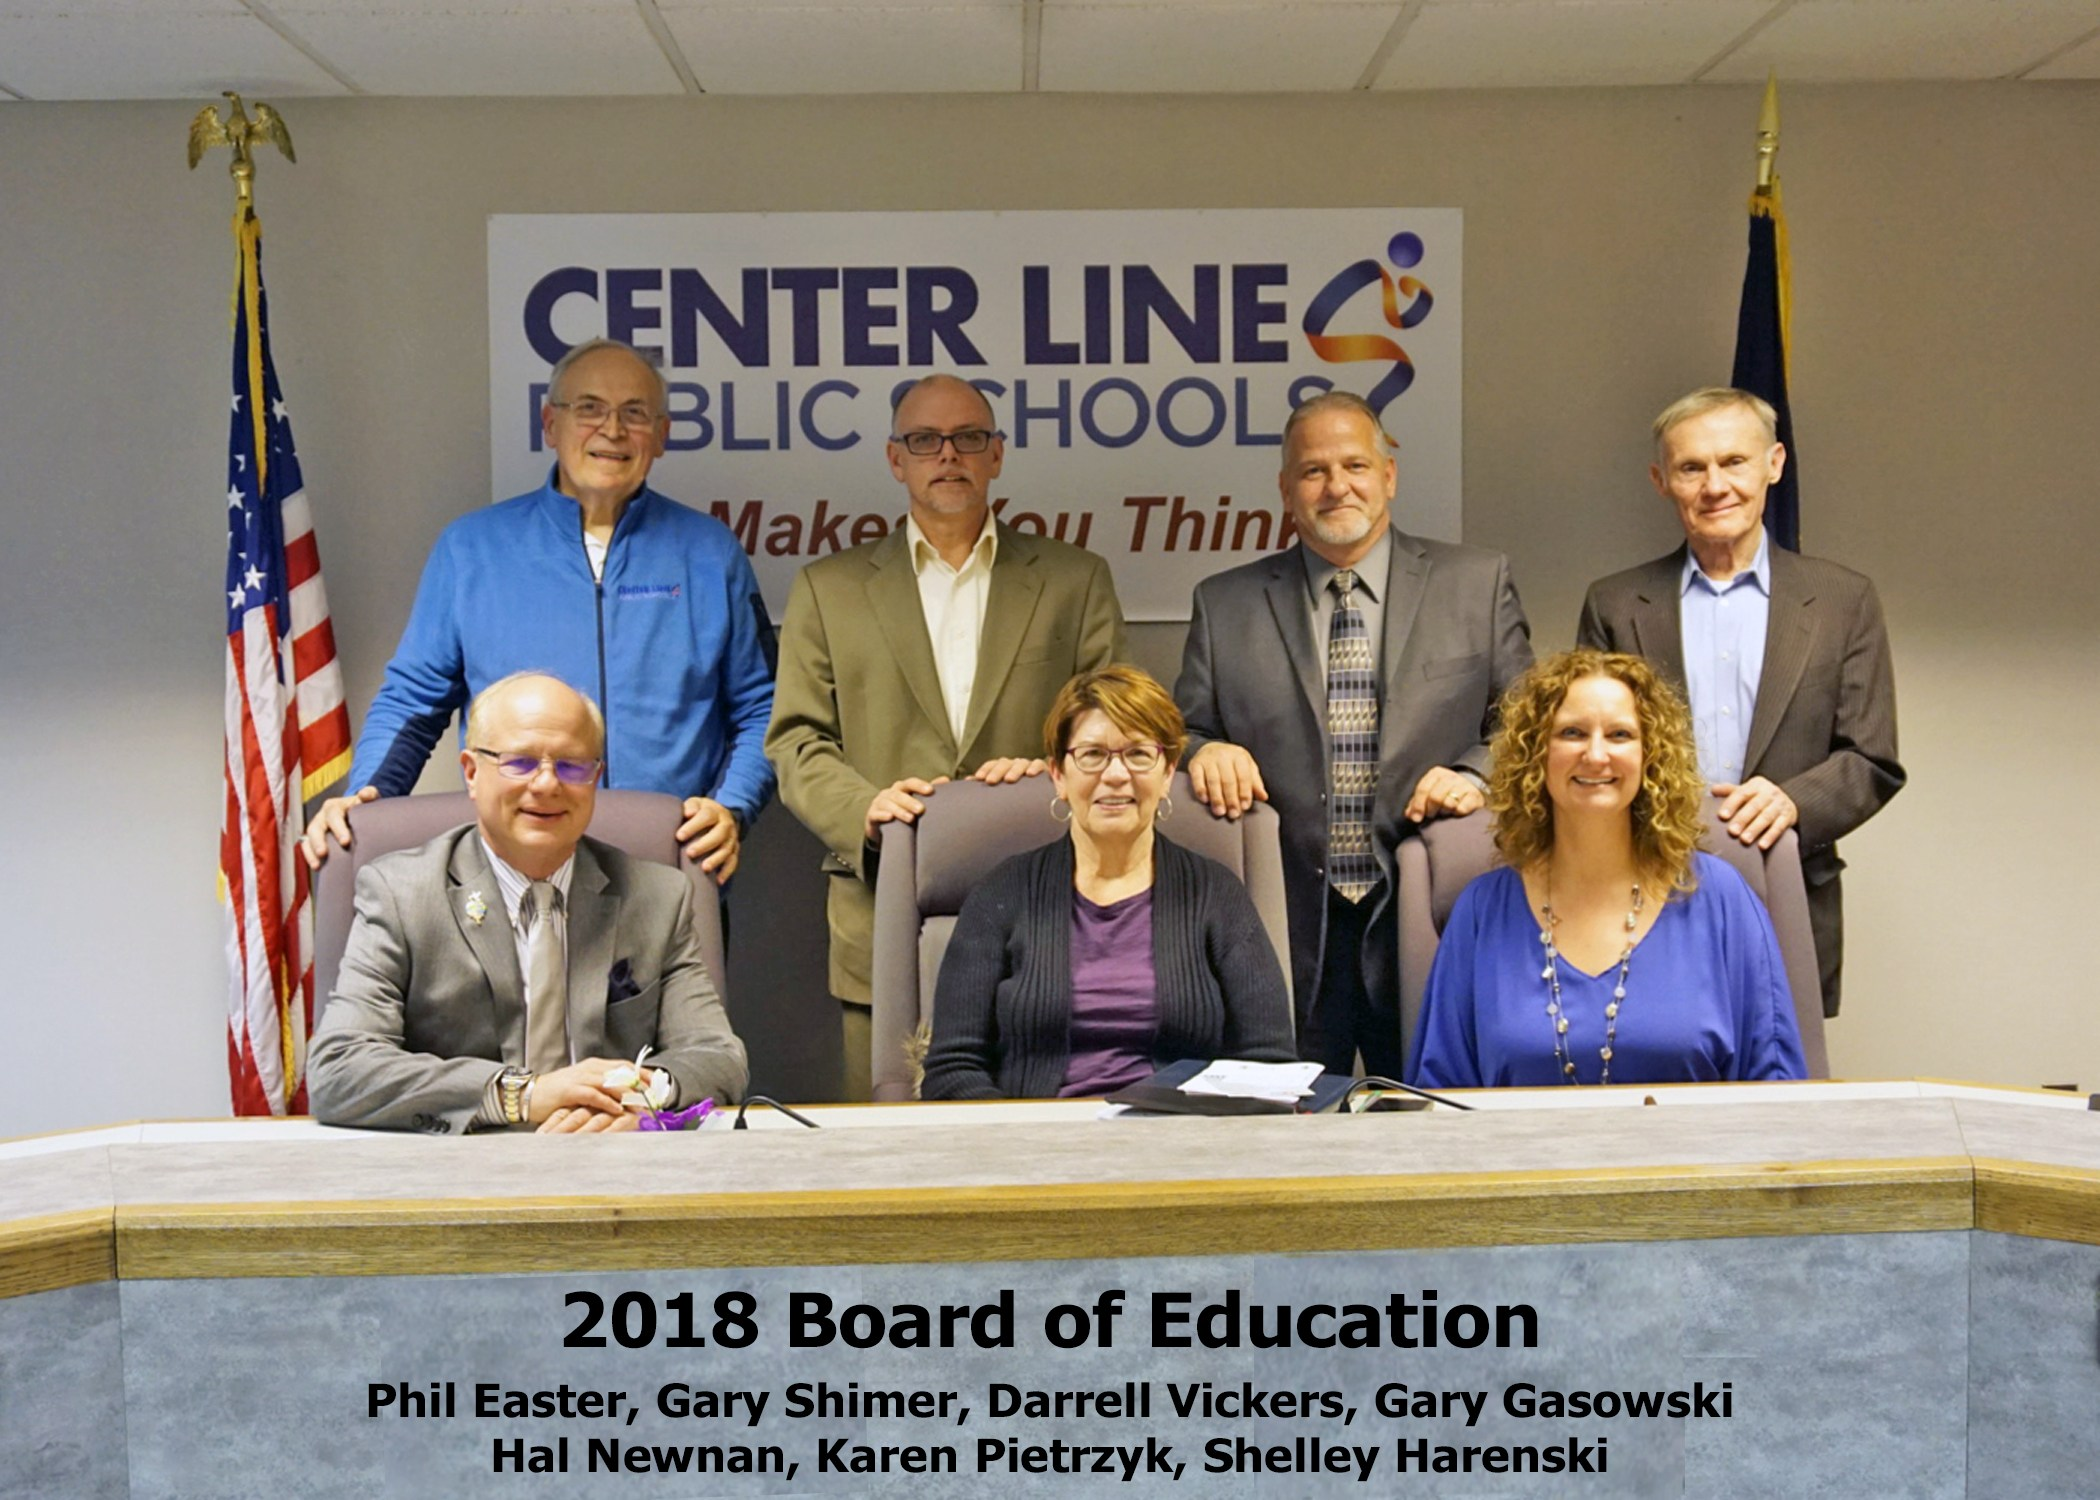 2018 Board of Education    Phil Easter, Gary Shimer, Darrell Vickers, Gary Gasowski Hal Newnan, Karen Pietrzyk, Shelley Harenski